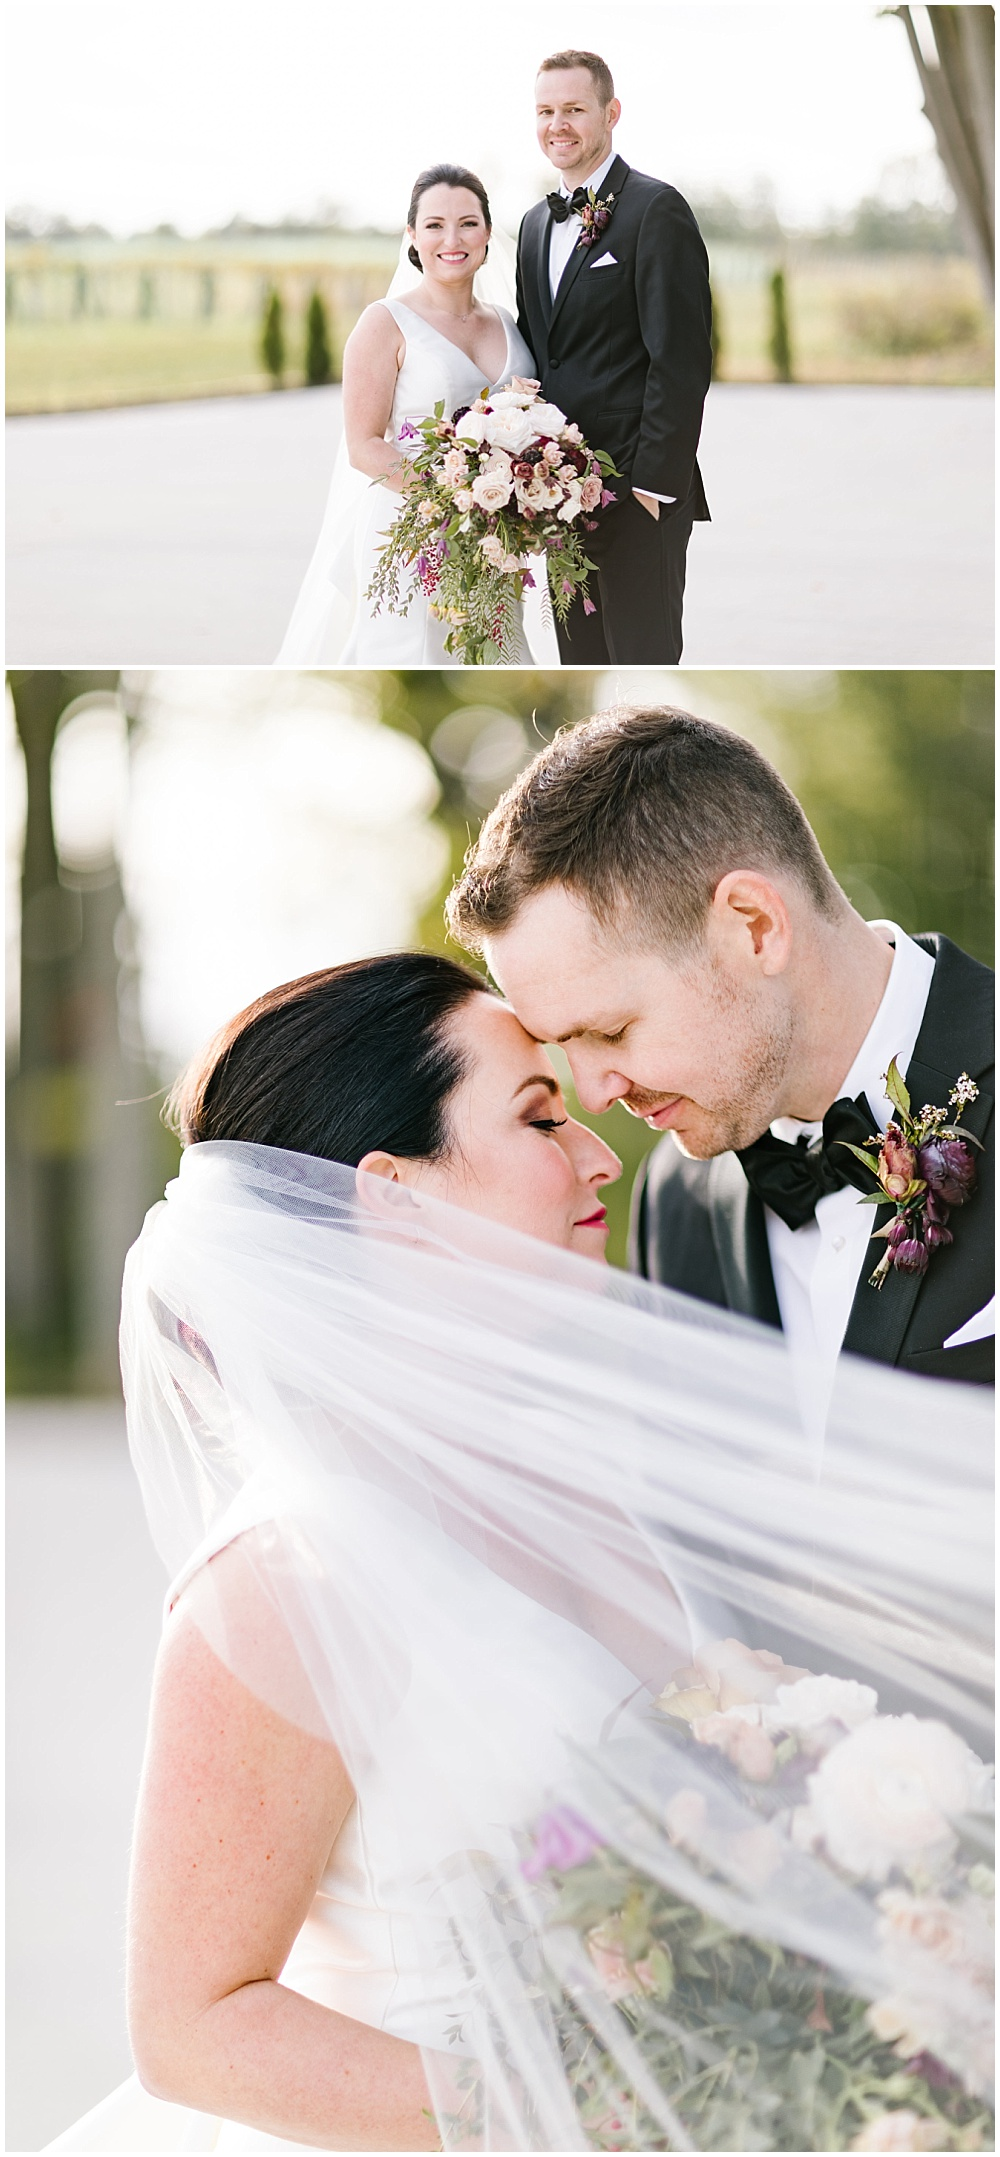 Bride and groom portraits | Daniel's Vineyard wedding with Ivan & Louise + Jessica Dum Wedding Coordination